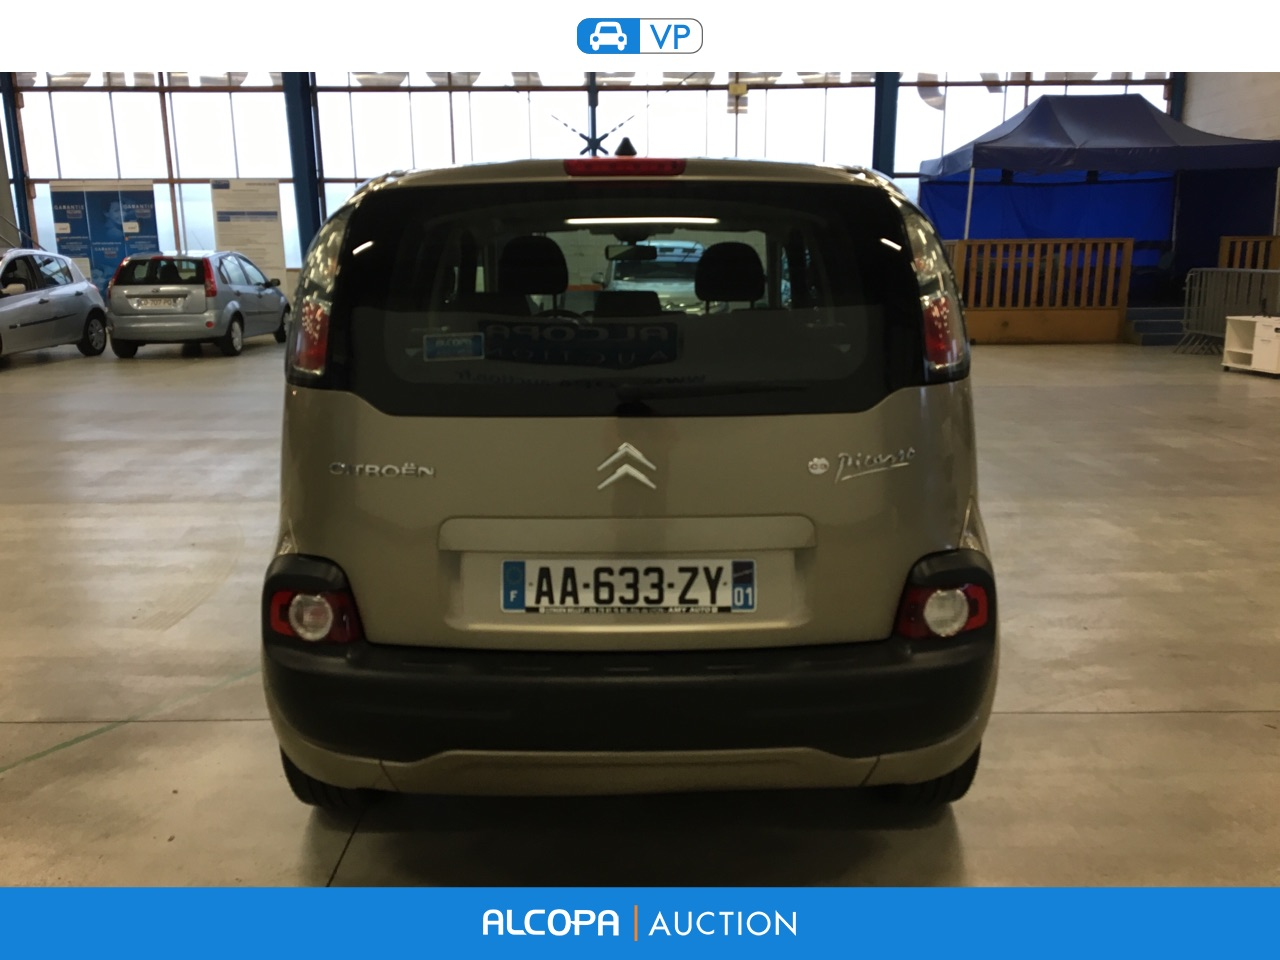 citroen c3 c3 picasso 1 6 hdi110 fap confort rennes alcopa auction. Black Bedroom Furniture Sets. Home Design Ideas